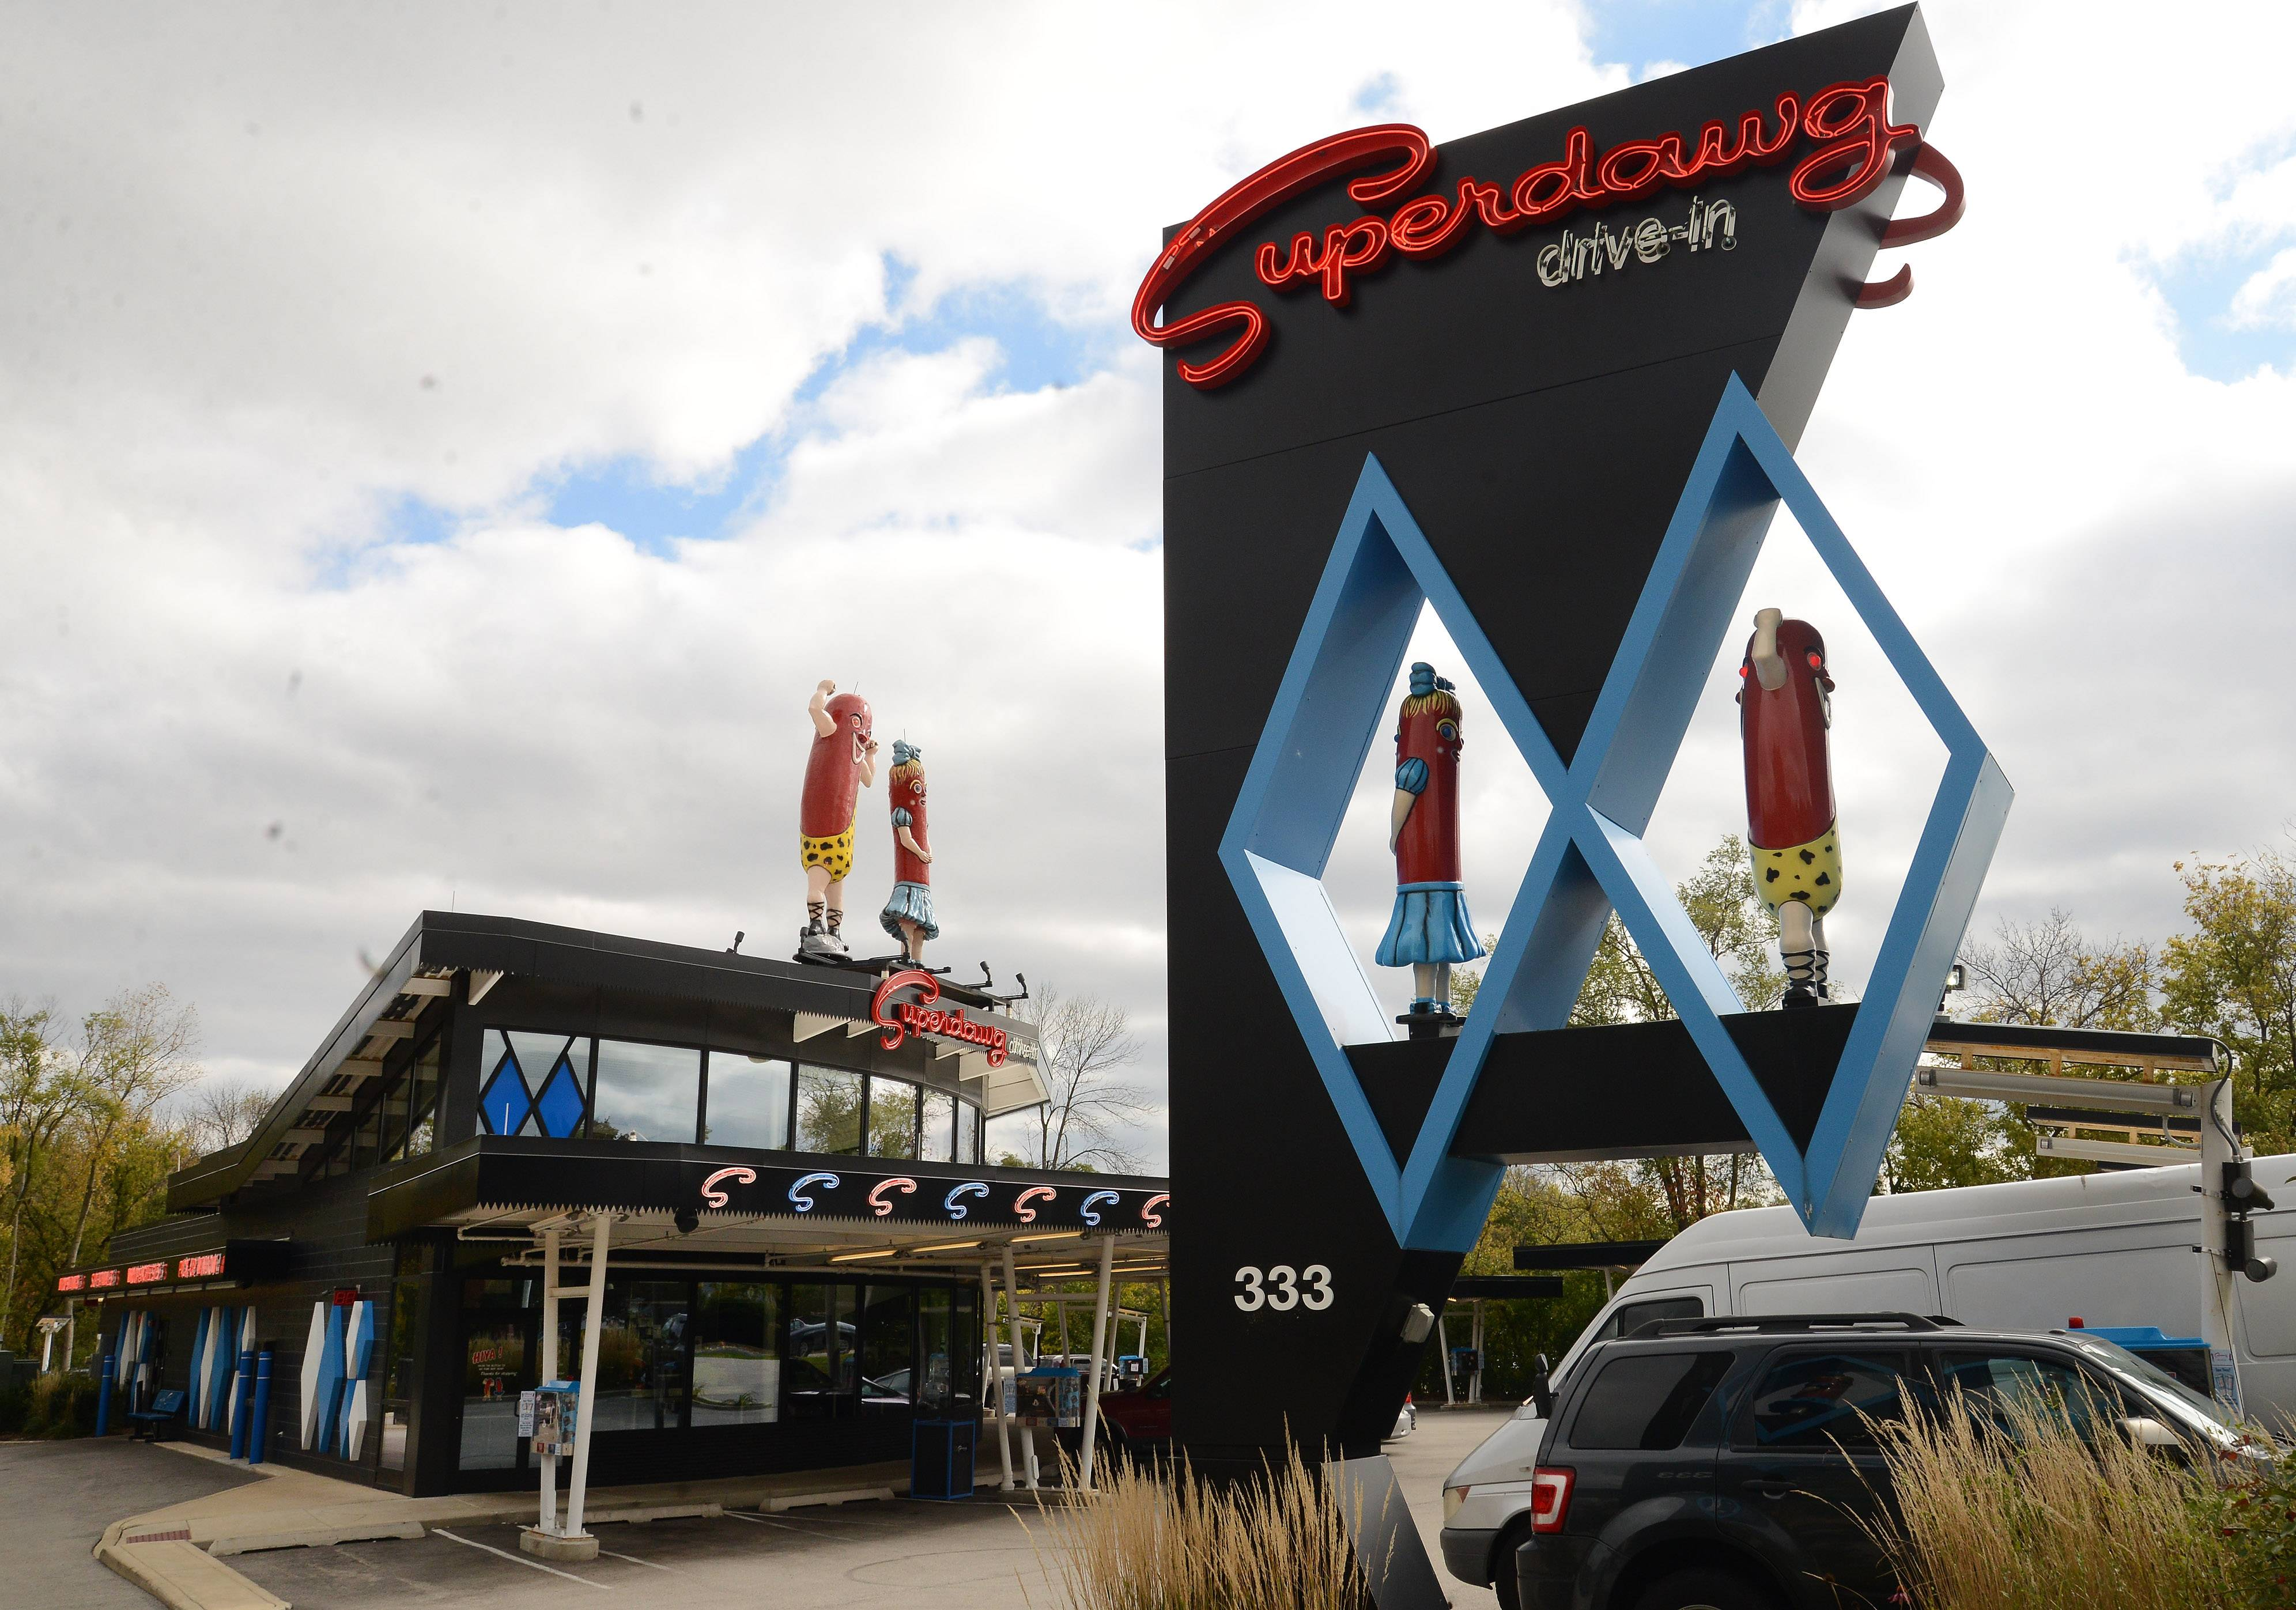 Superdawg Drive-in soon may serve its brand-name craft beer at its Wheeling location at 333 S. Milwaukee Ave.